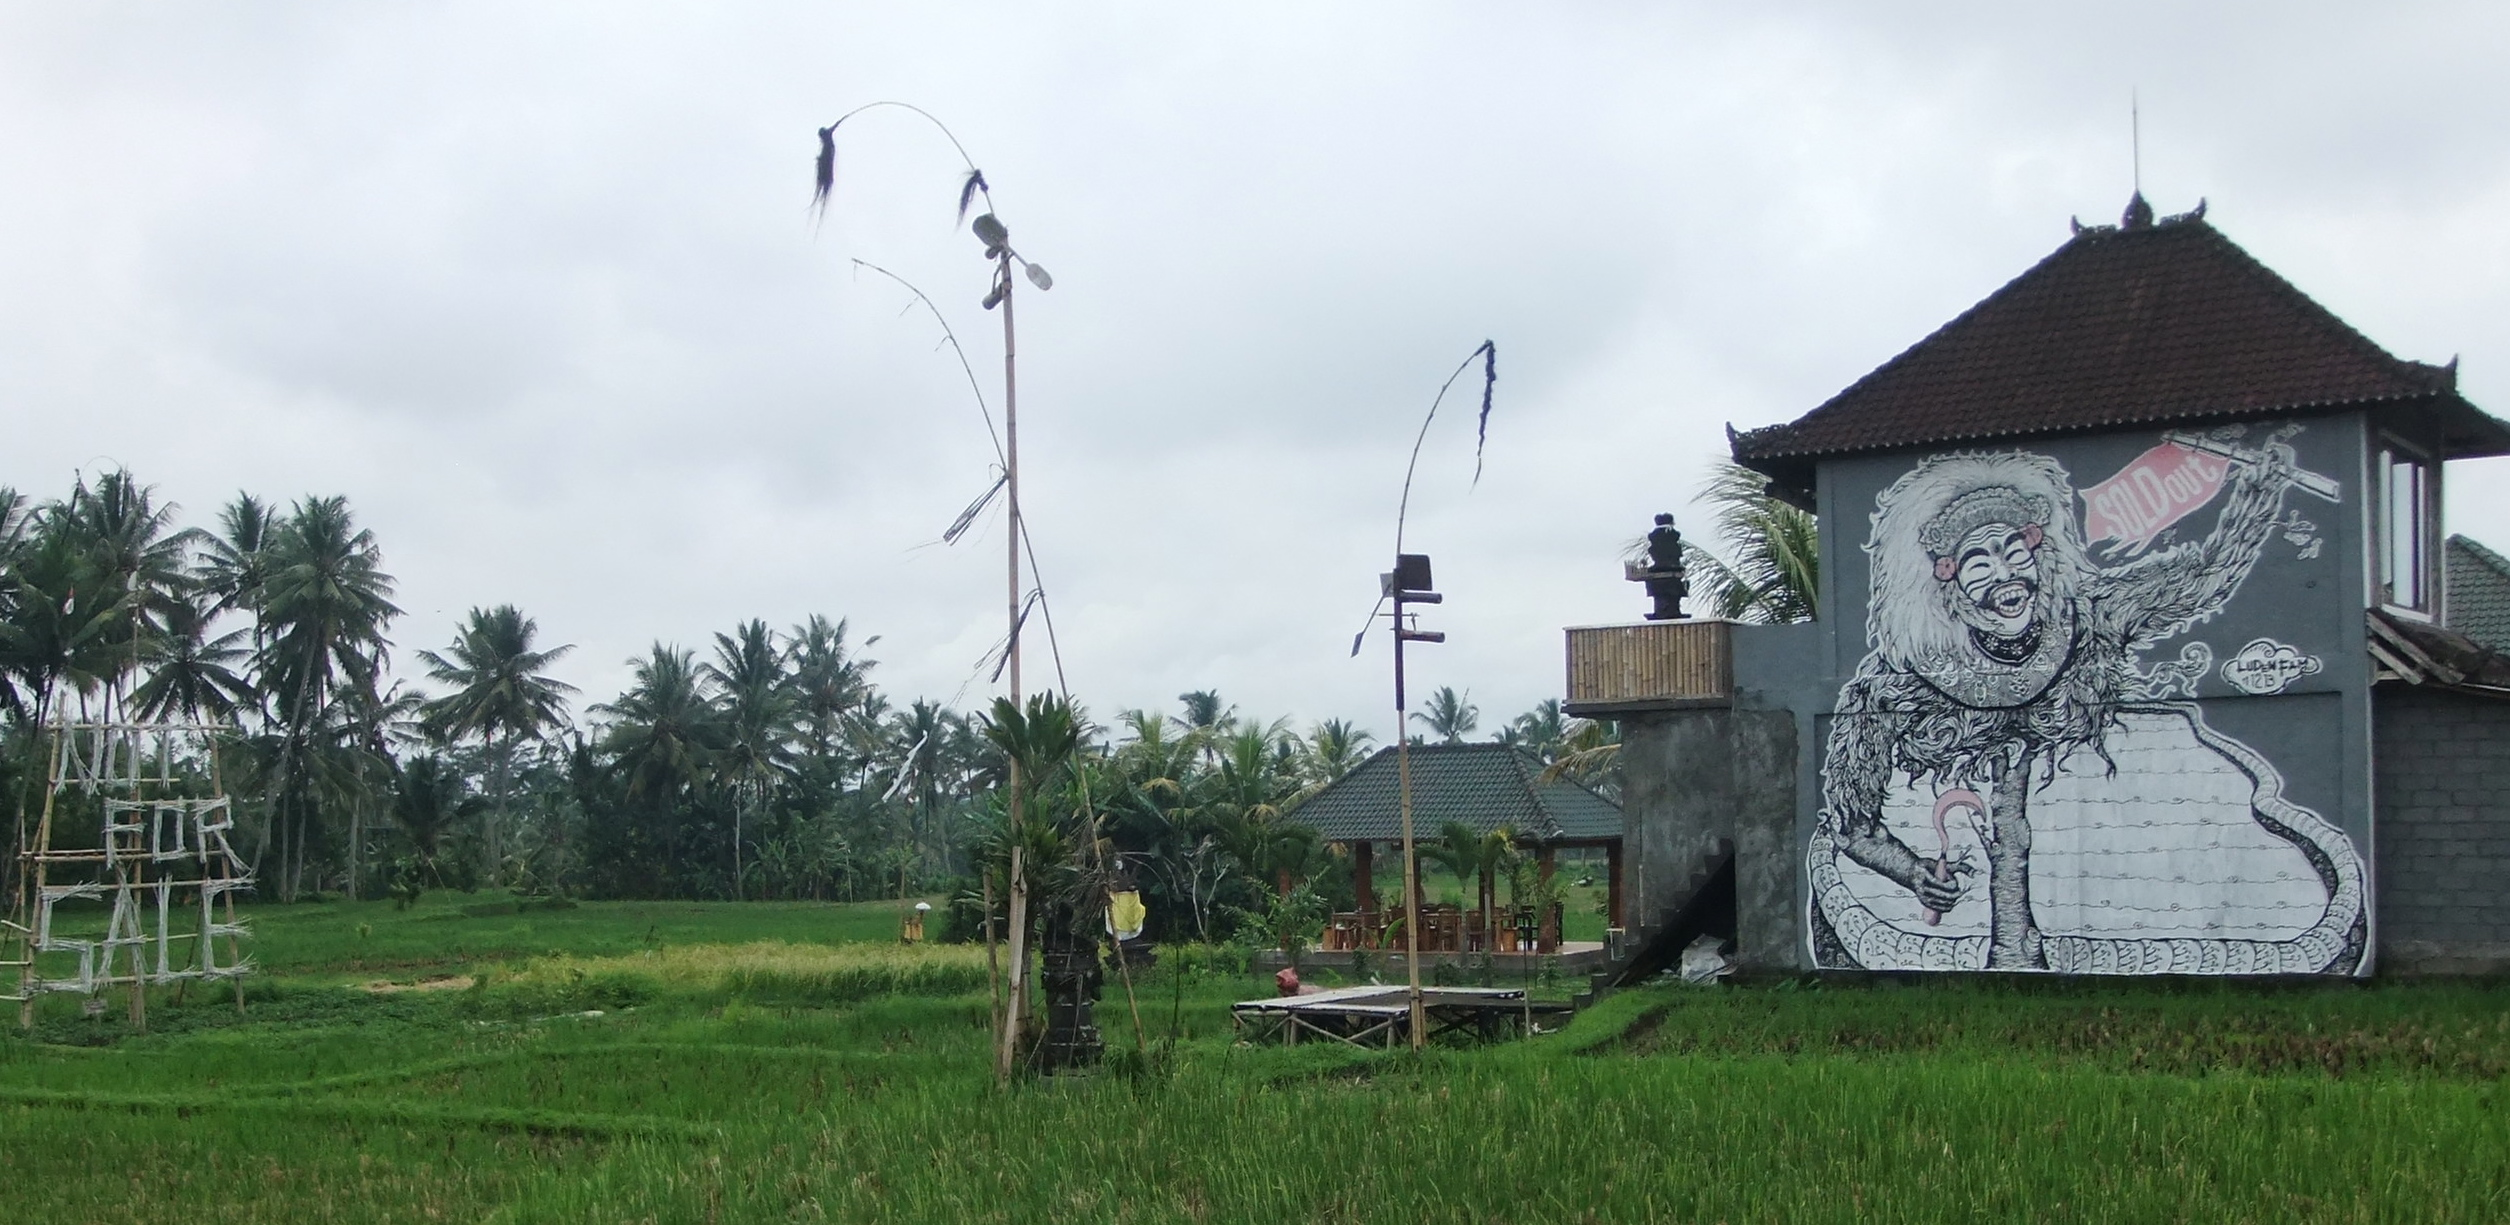 Luden House Ubud - 'Not For Sale' + 'Sold Out' 2014, Image Richard Horstman